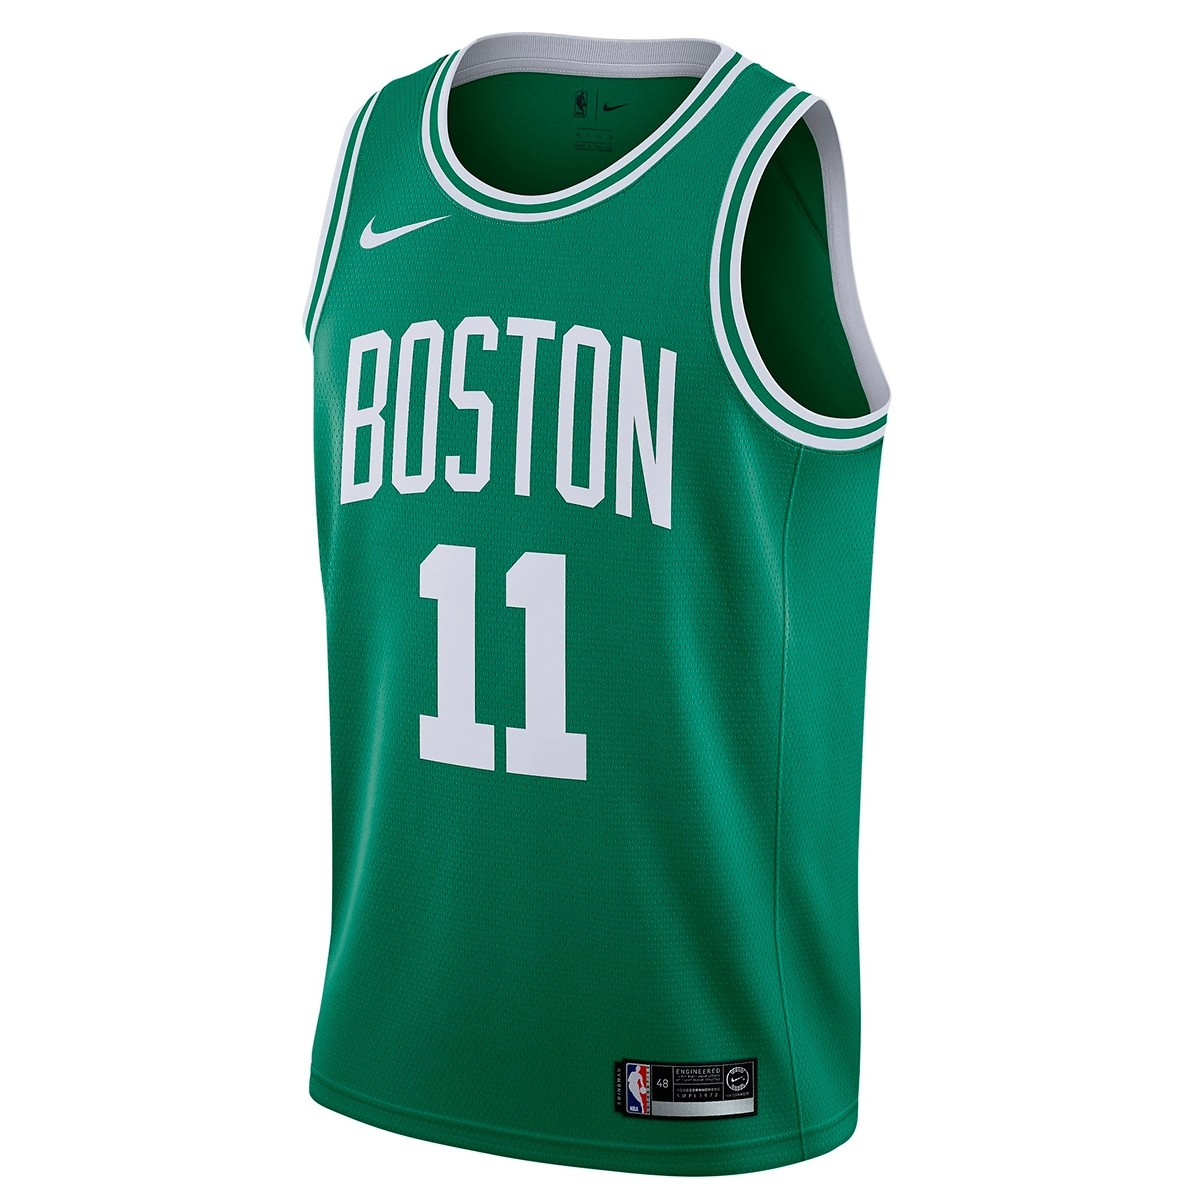 Nike Junior NBA Boston Celtics Swingman Jersey Irving 'Icon Edition'